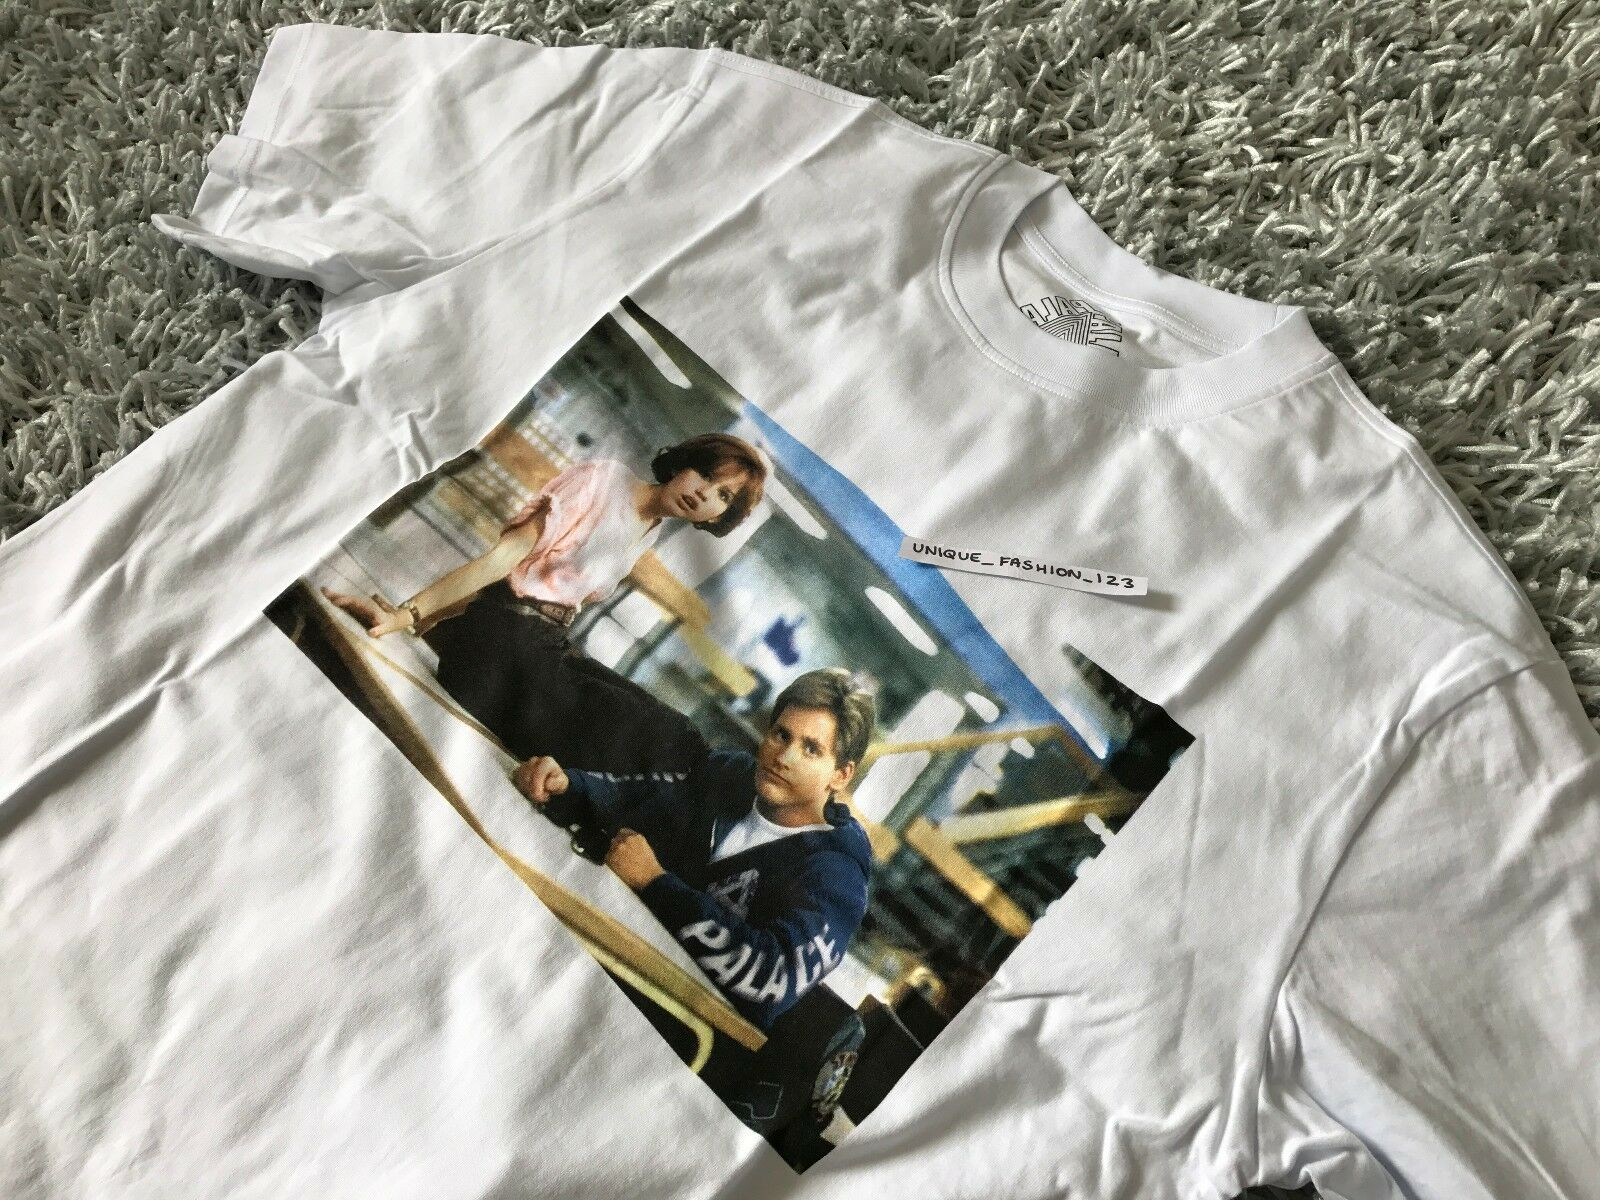 PALACE SKATEBOARDS SS17 EMELIO ESTEVEZ SMALL TSHIRT TEE S THE BREAKFAST CLUB